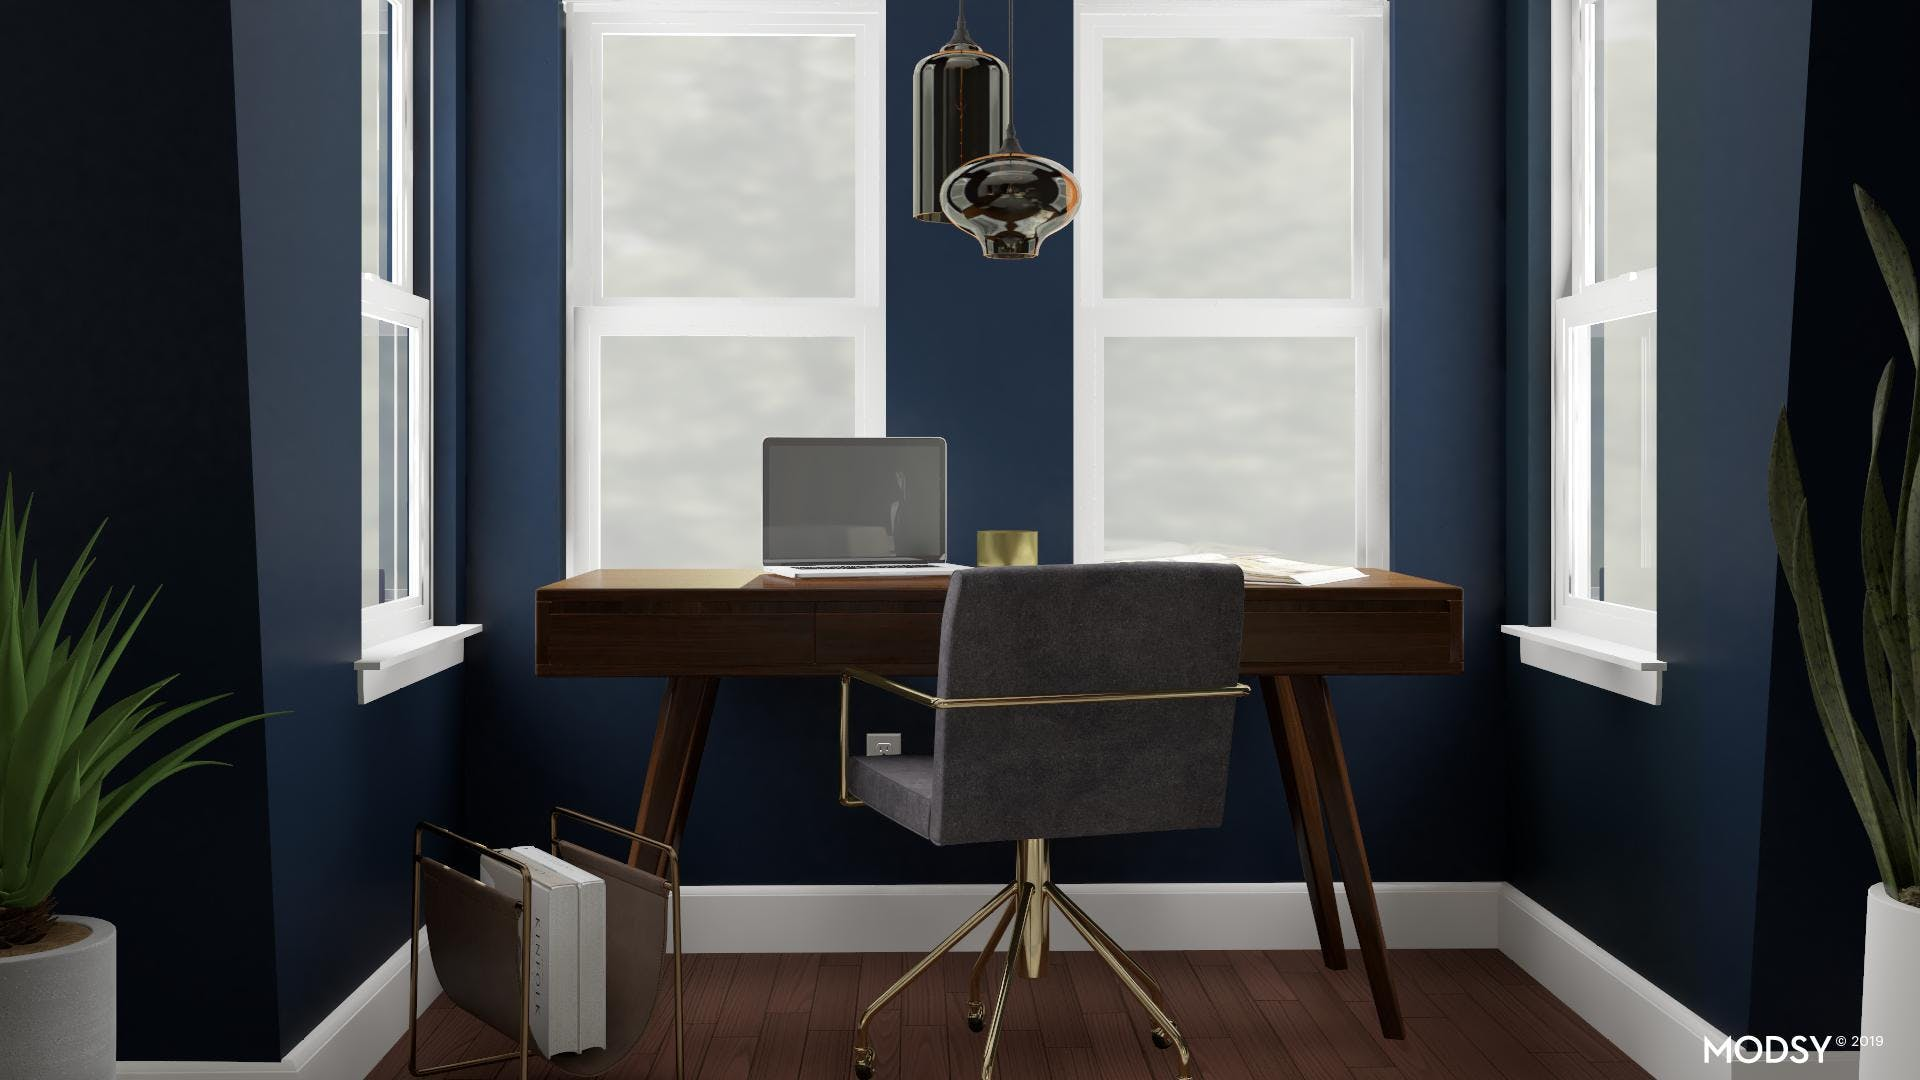 Go Bold With Your Walls - A Mid-Century Mod Office